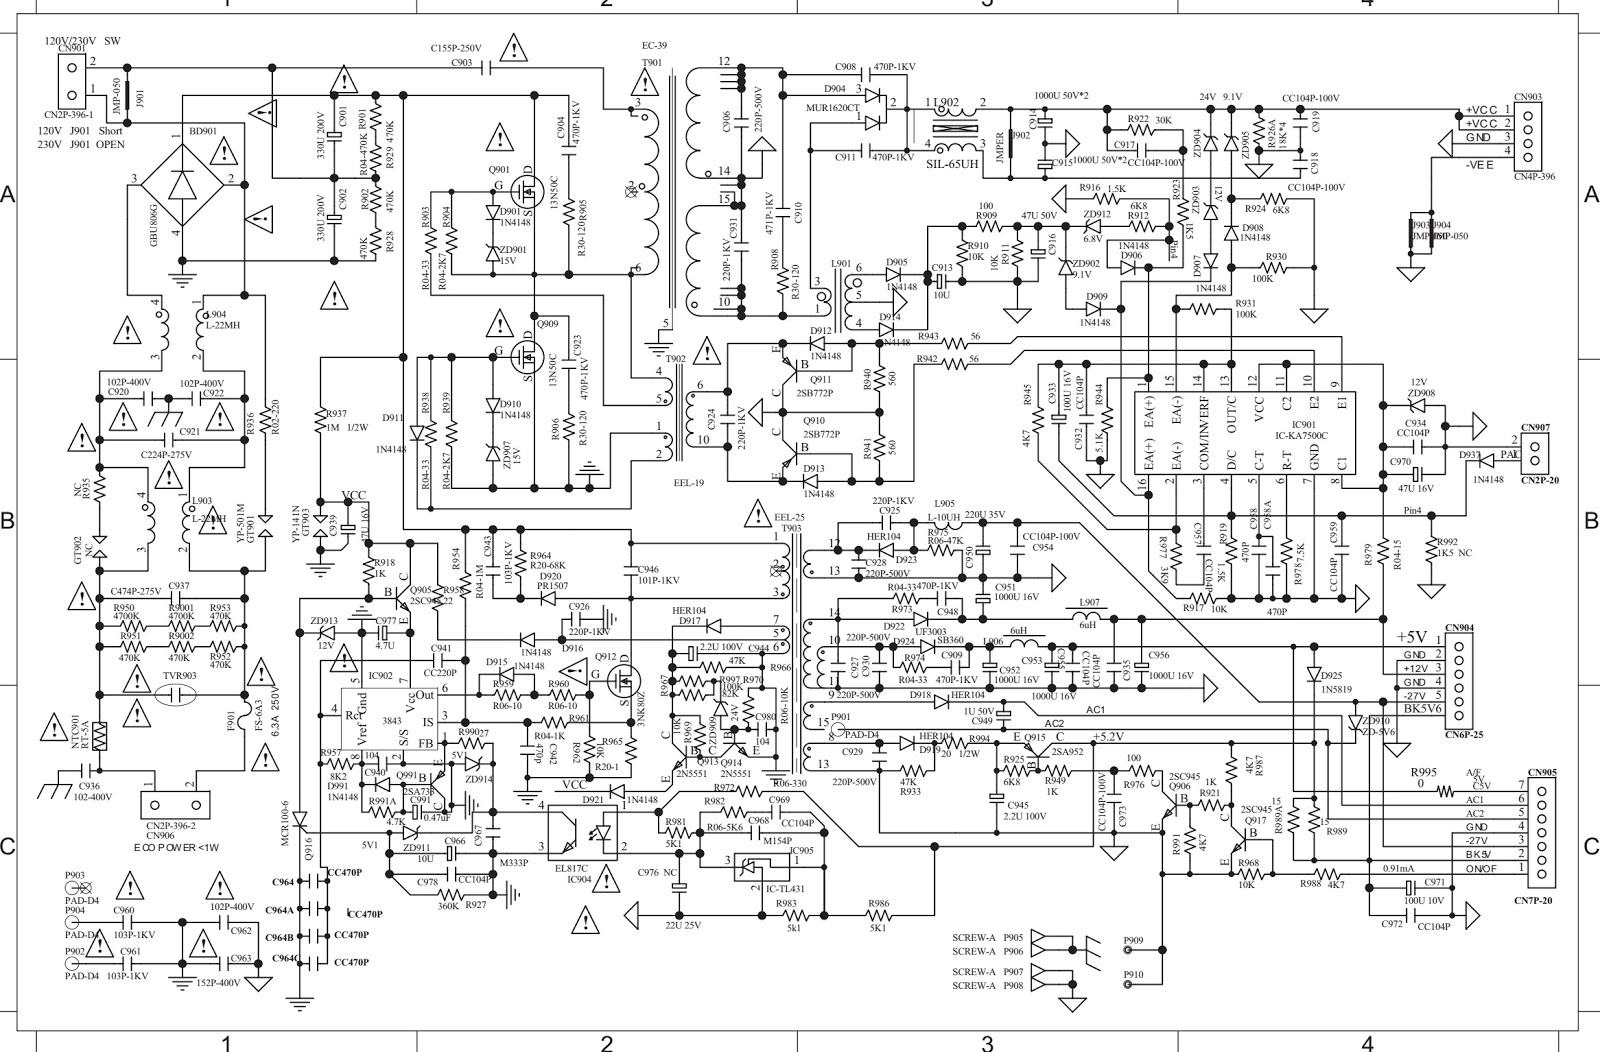 Philips Hts3565d Power Supply Regulator And Main Amplifier Circuit Dvd Diagram Smps Schematic Pwb Click On The Schematics To Magnify